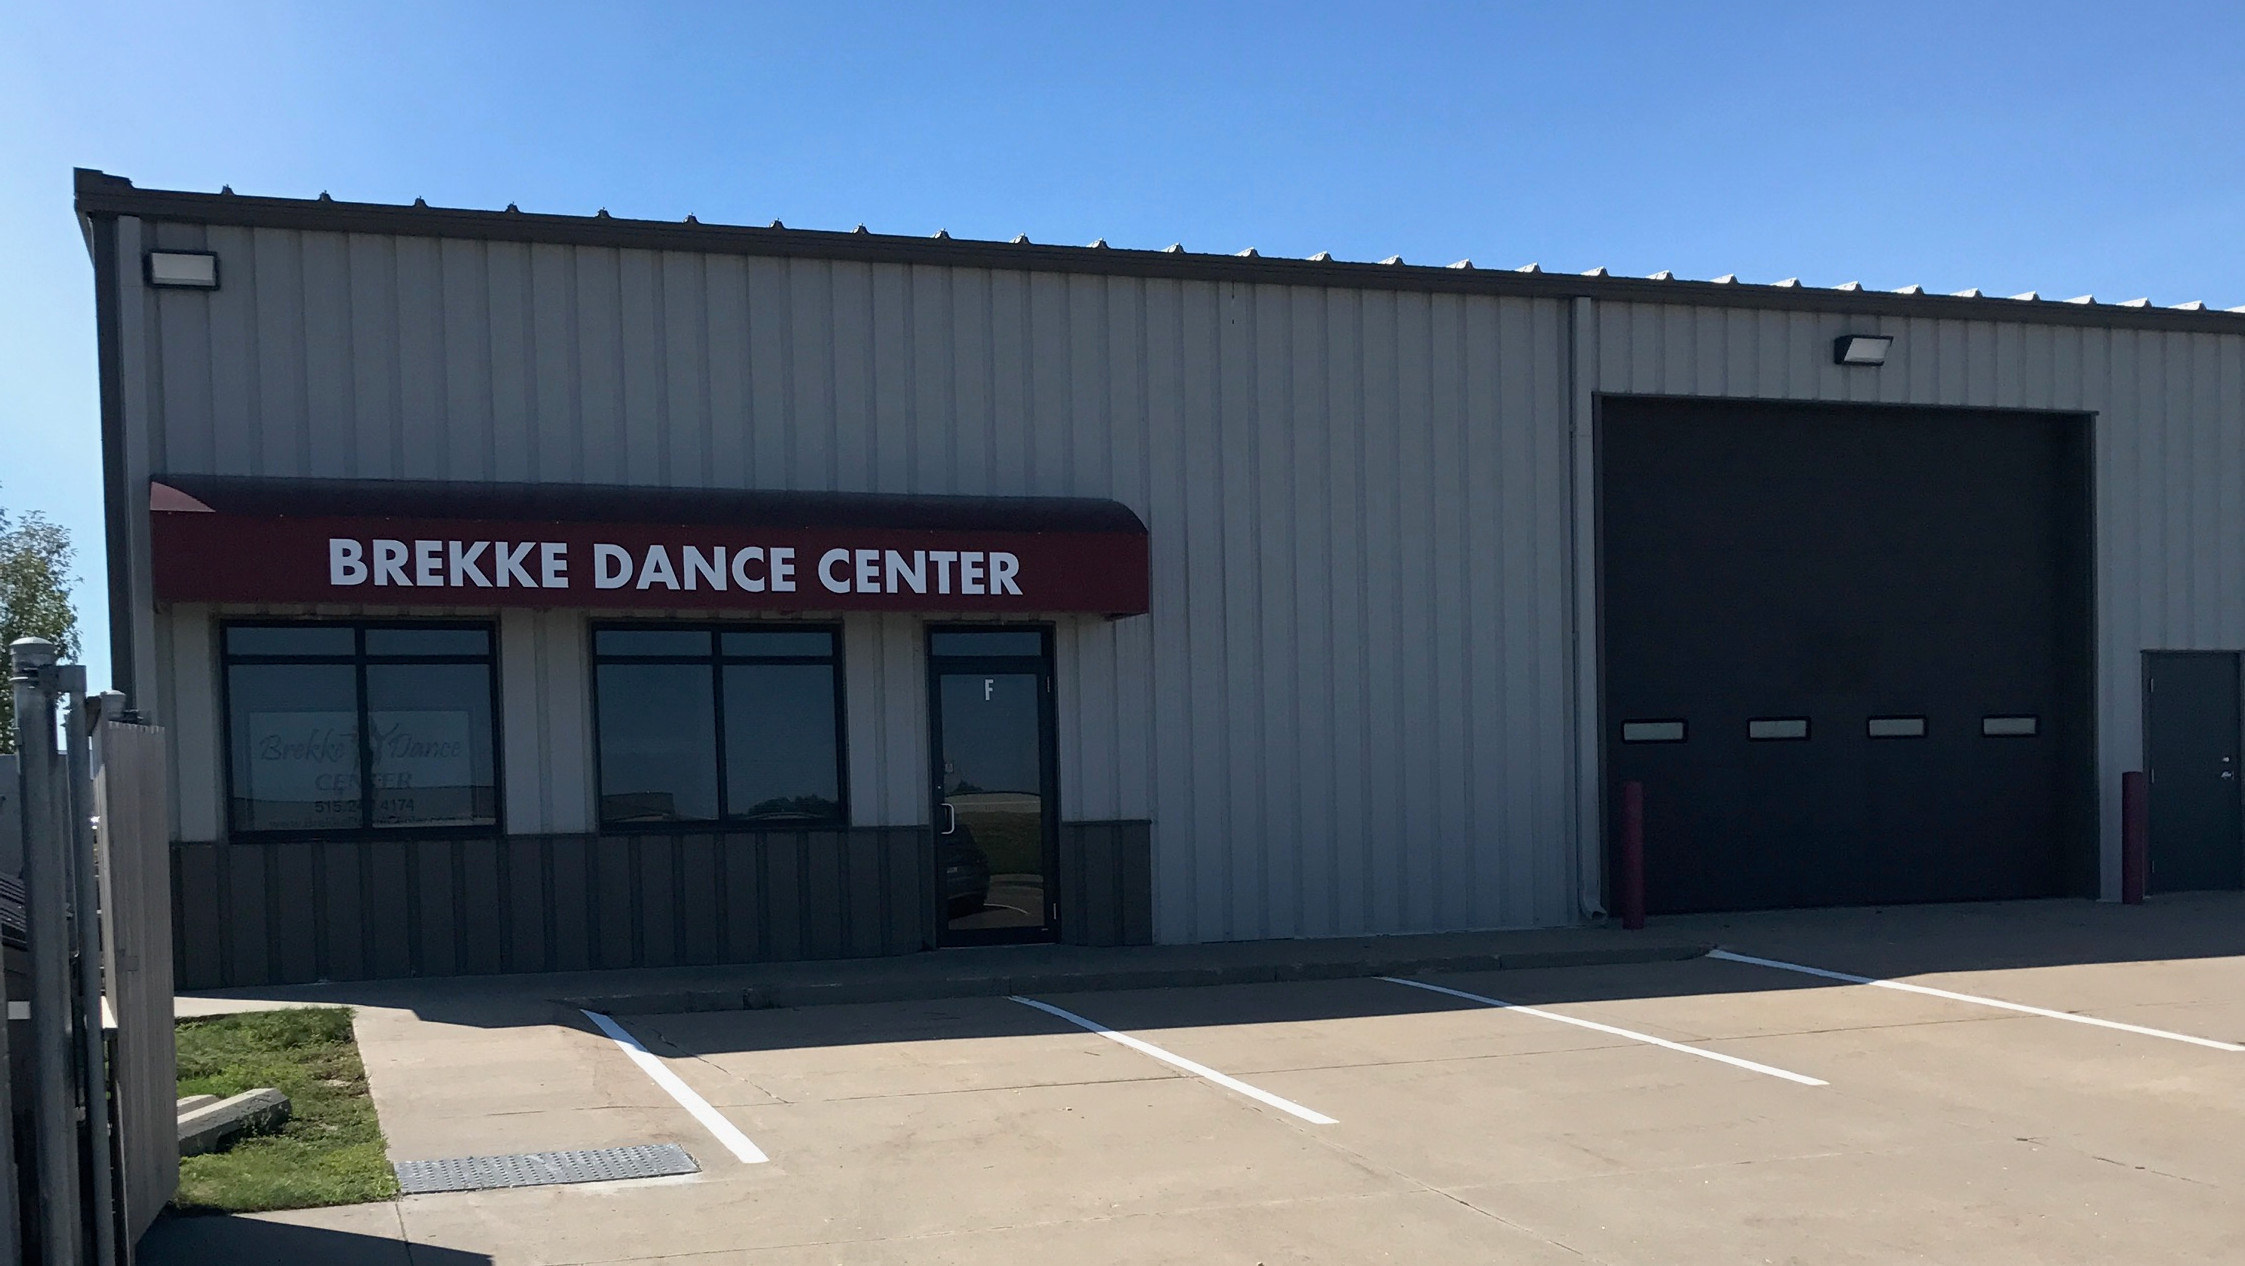 Brekke Dance Center Grimes Location